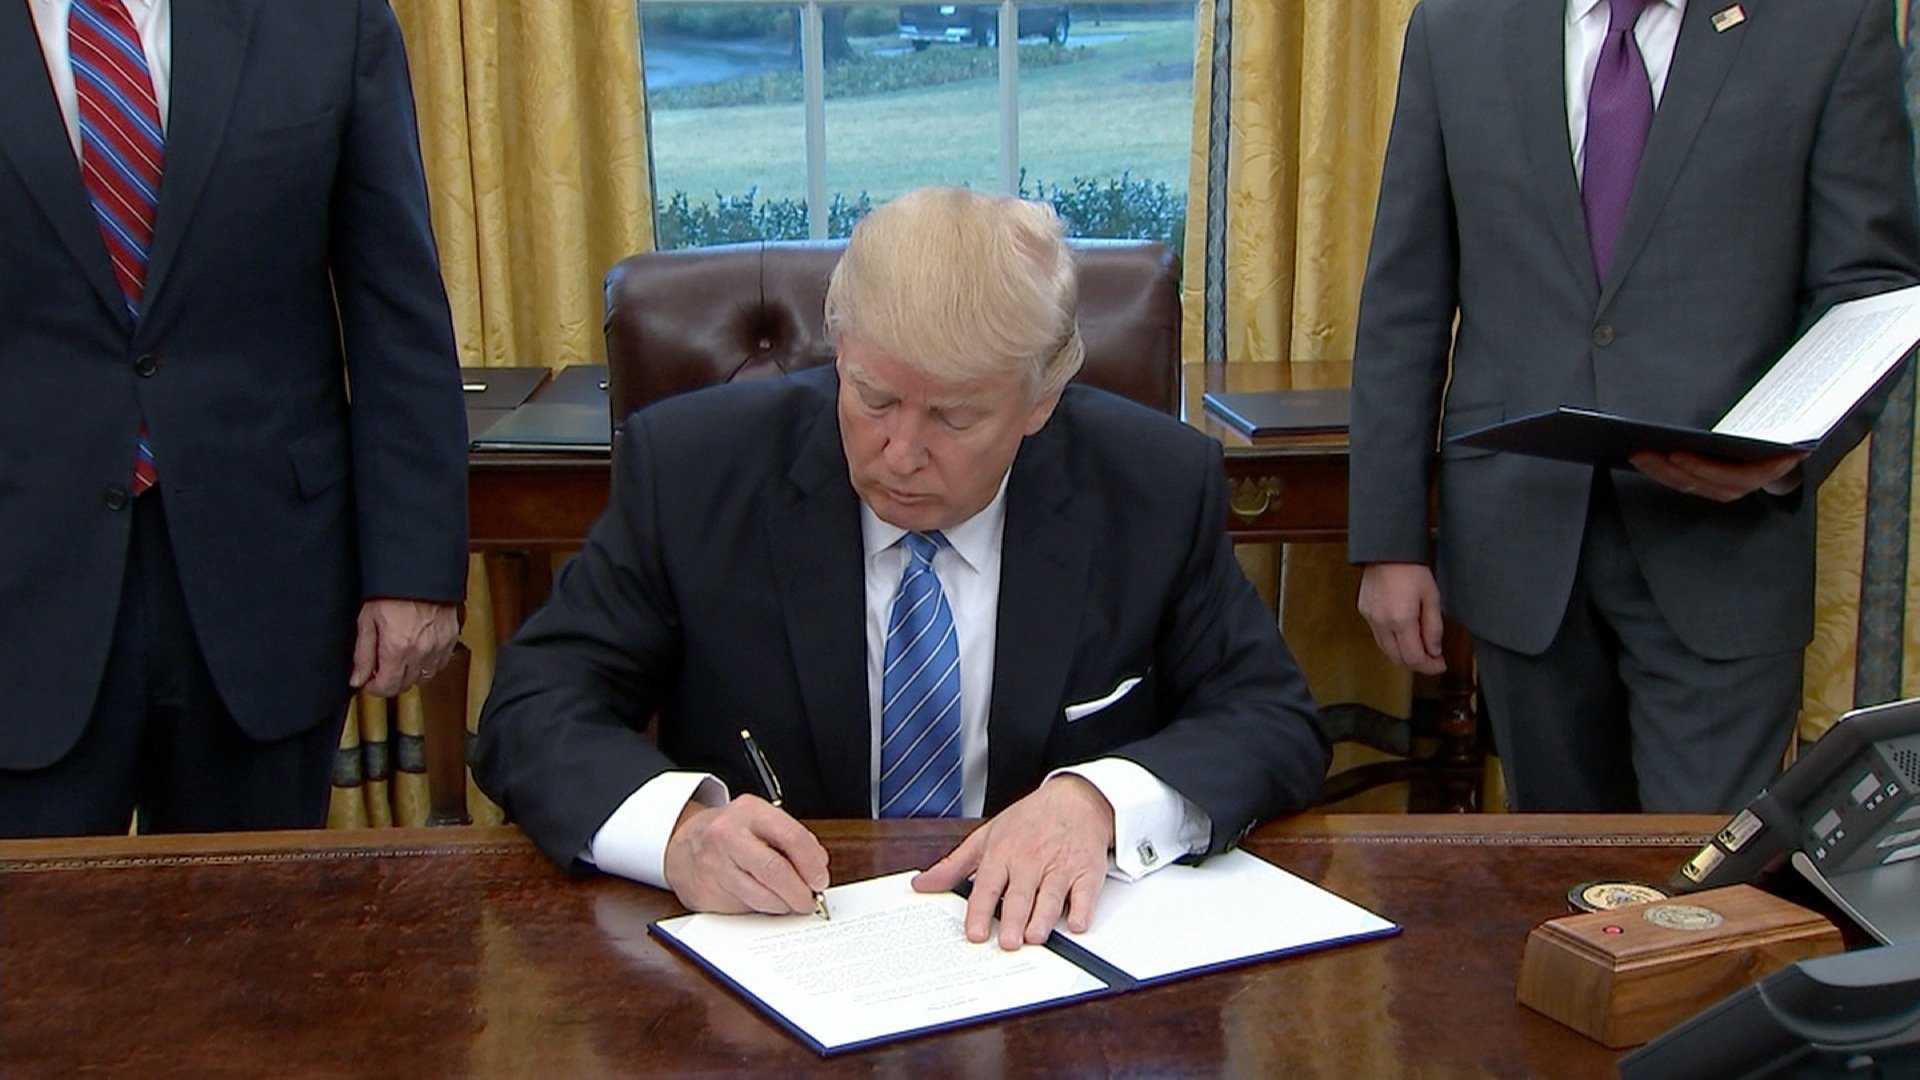 President Donald Trump signs a memorandum to pull the US from the Trans-Pacific Partnership trade deal on Monday, Jan. 23, 2017.